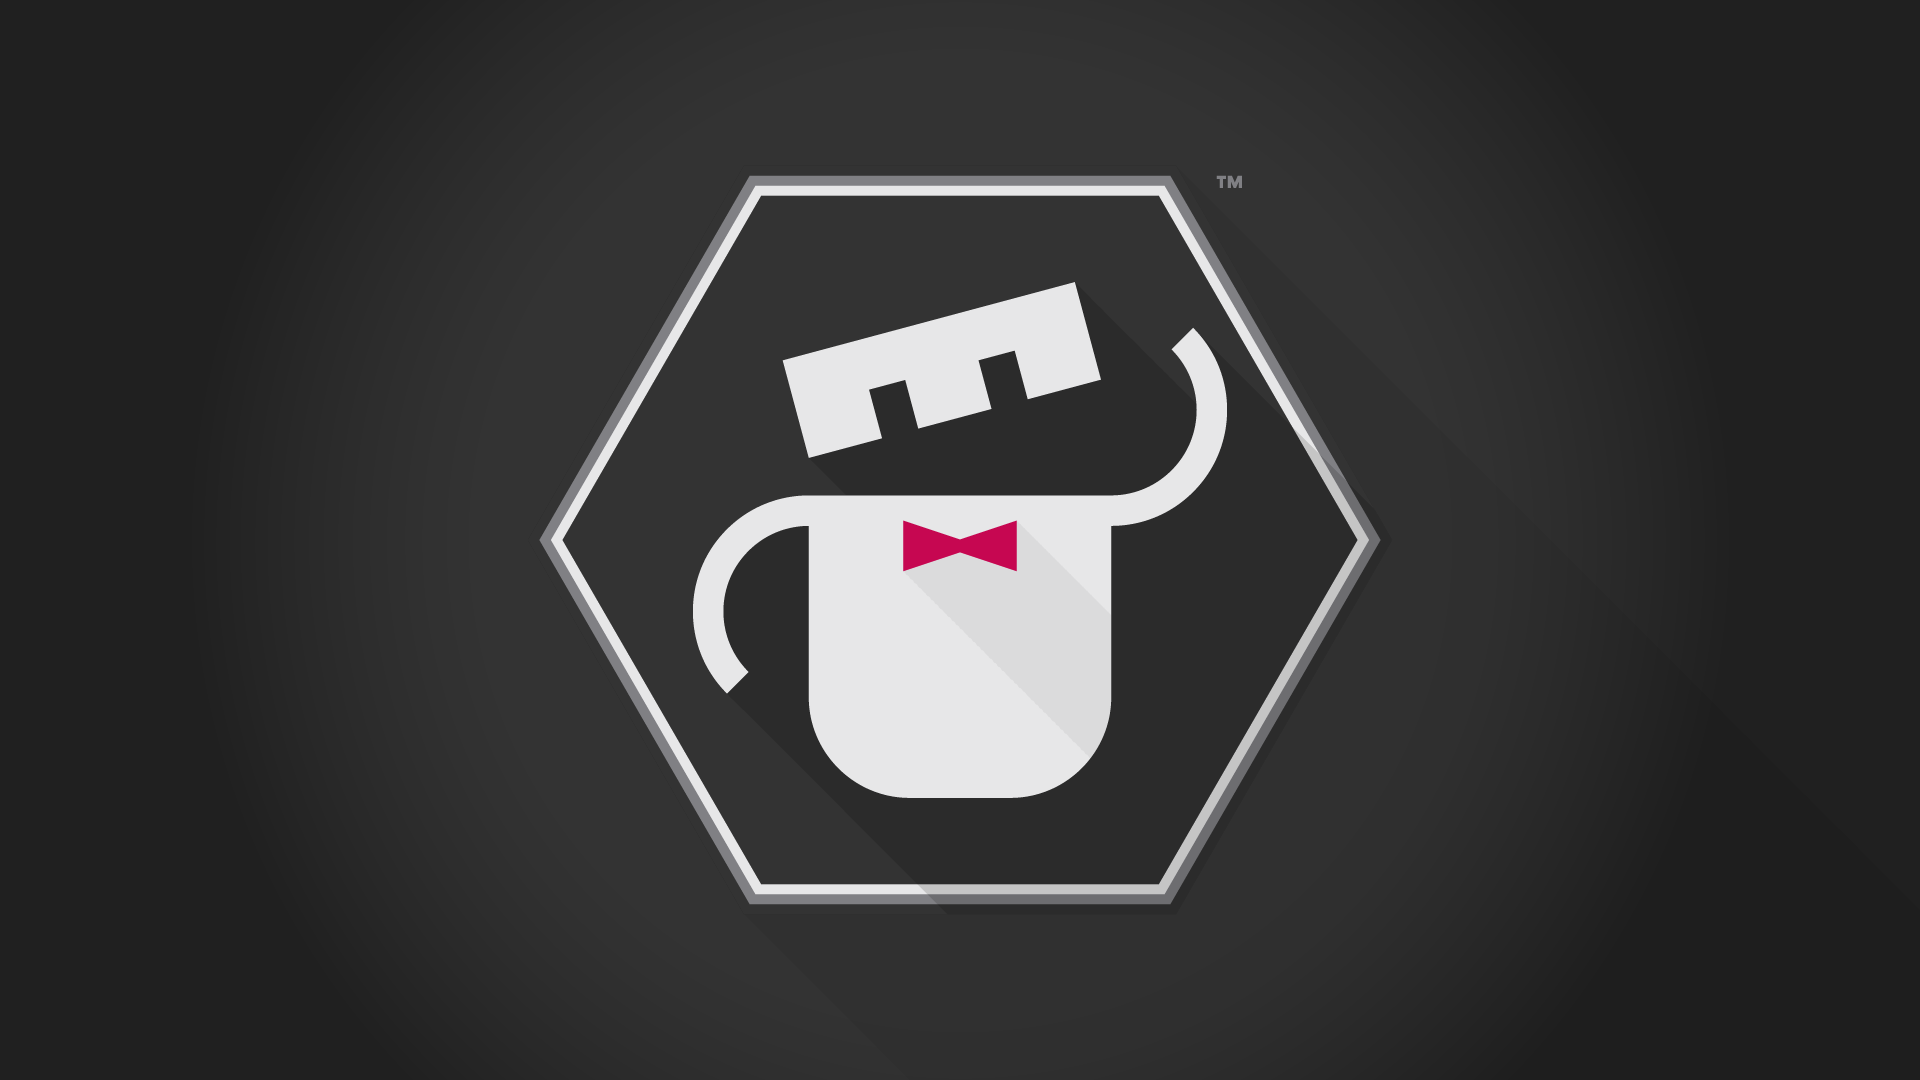 cosmic-misfit-hoverbot-lockups-2015-05-13-_with-grays-_icon-_dark-hex-bg